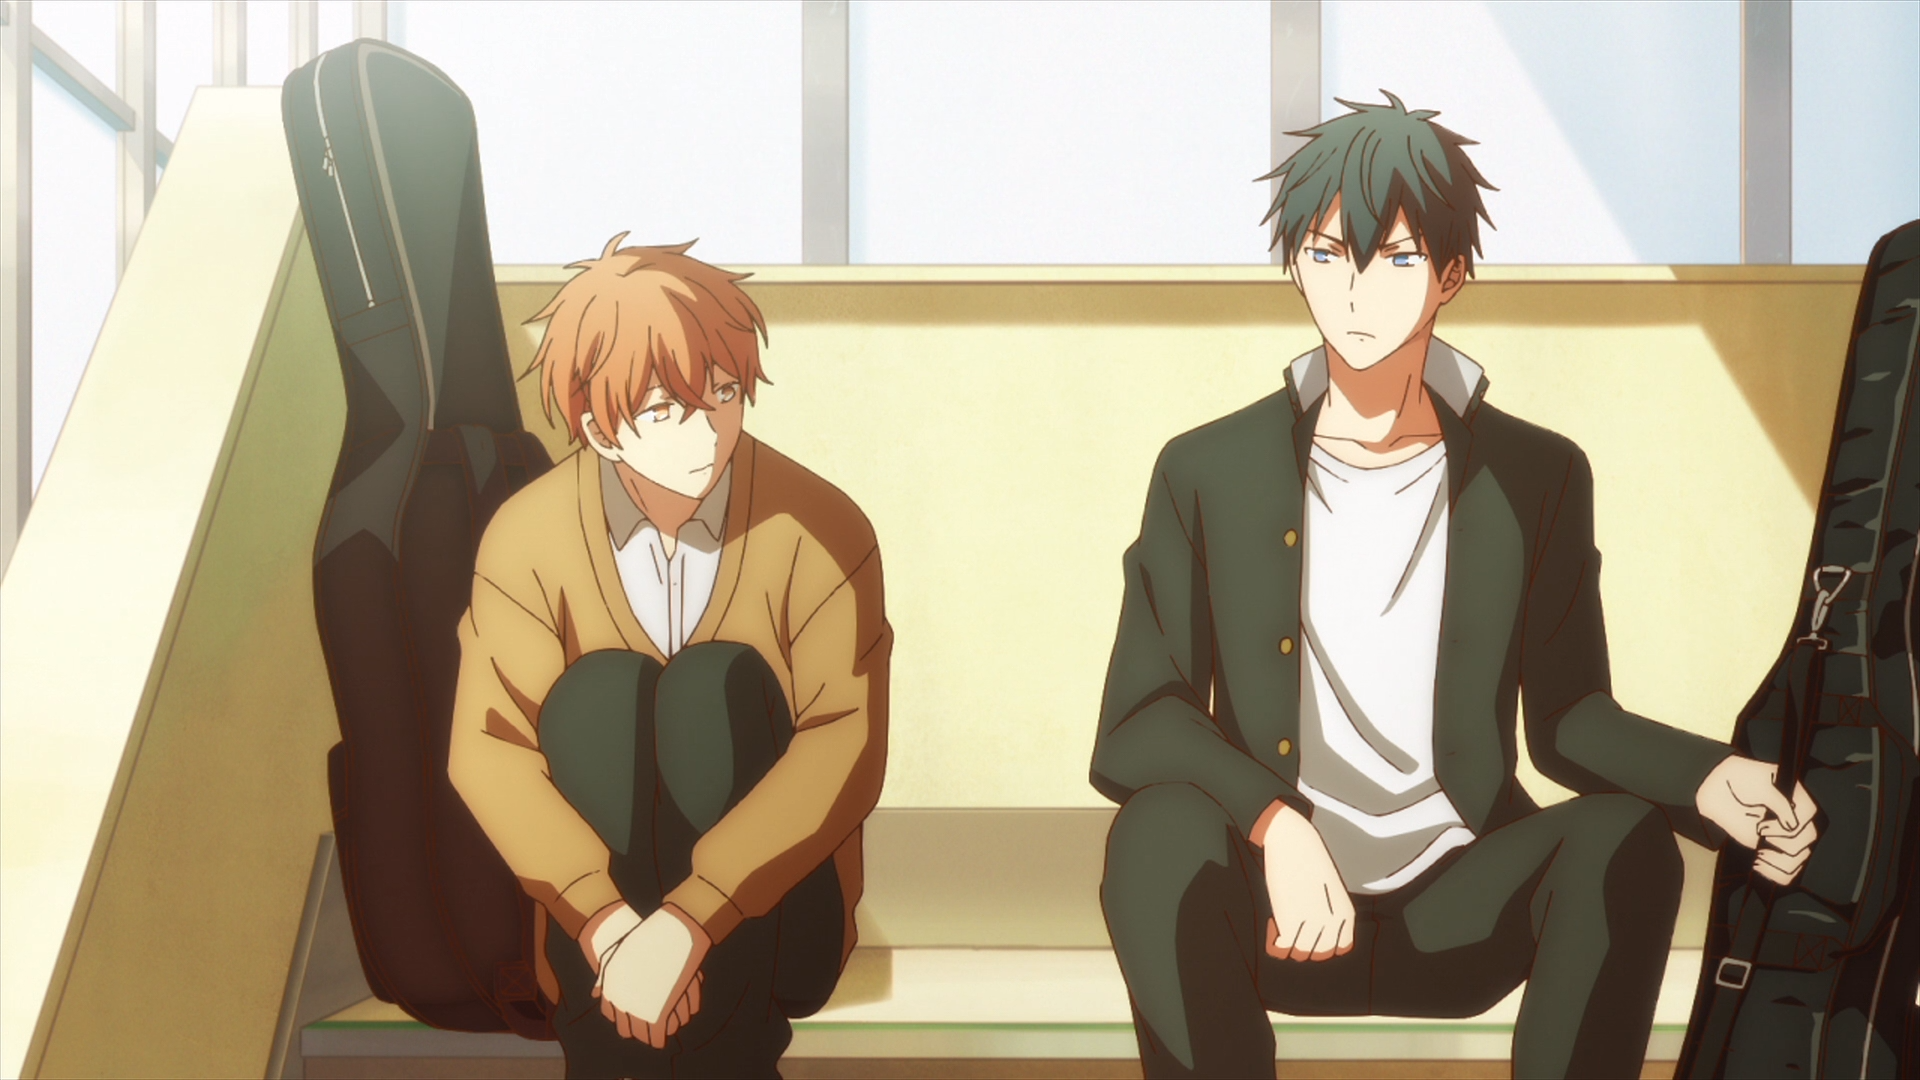 Given / Episode 2 / Mafuyu and Ritsuka sitting and talking together at their favorite spot